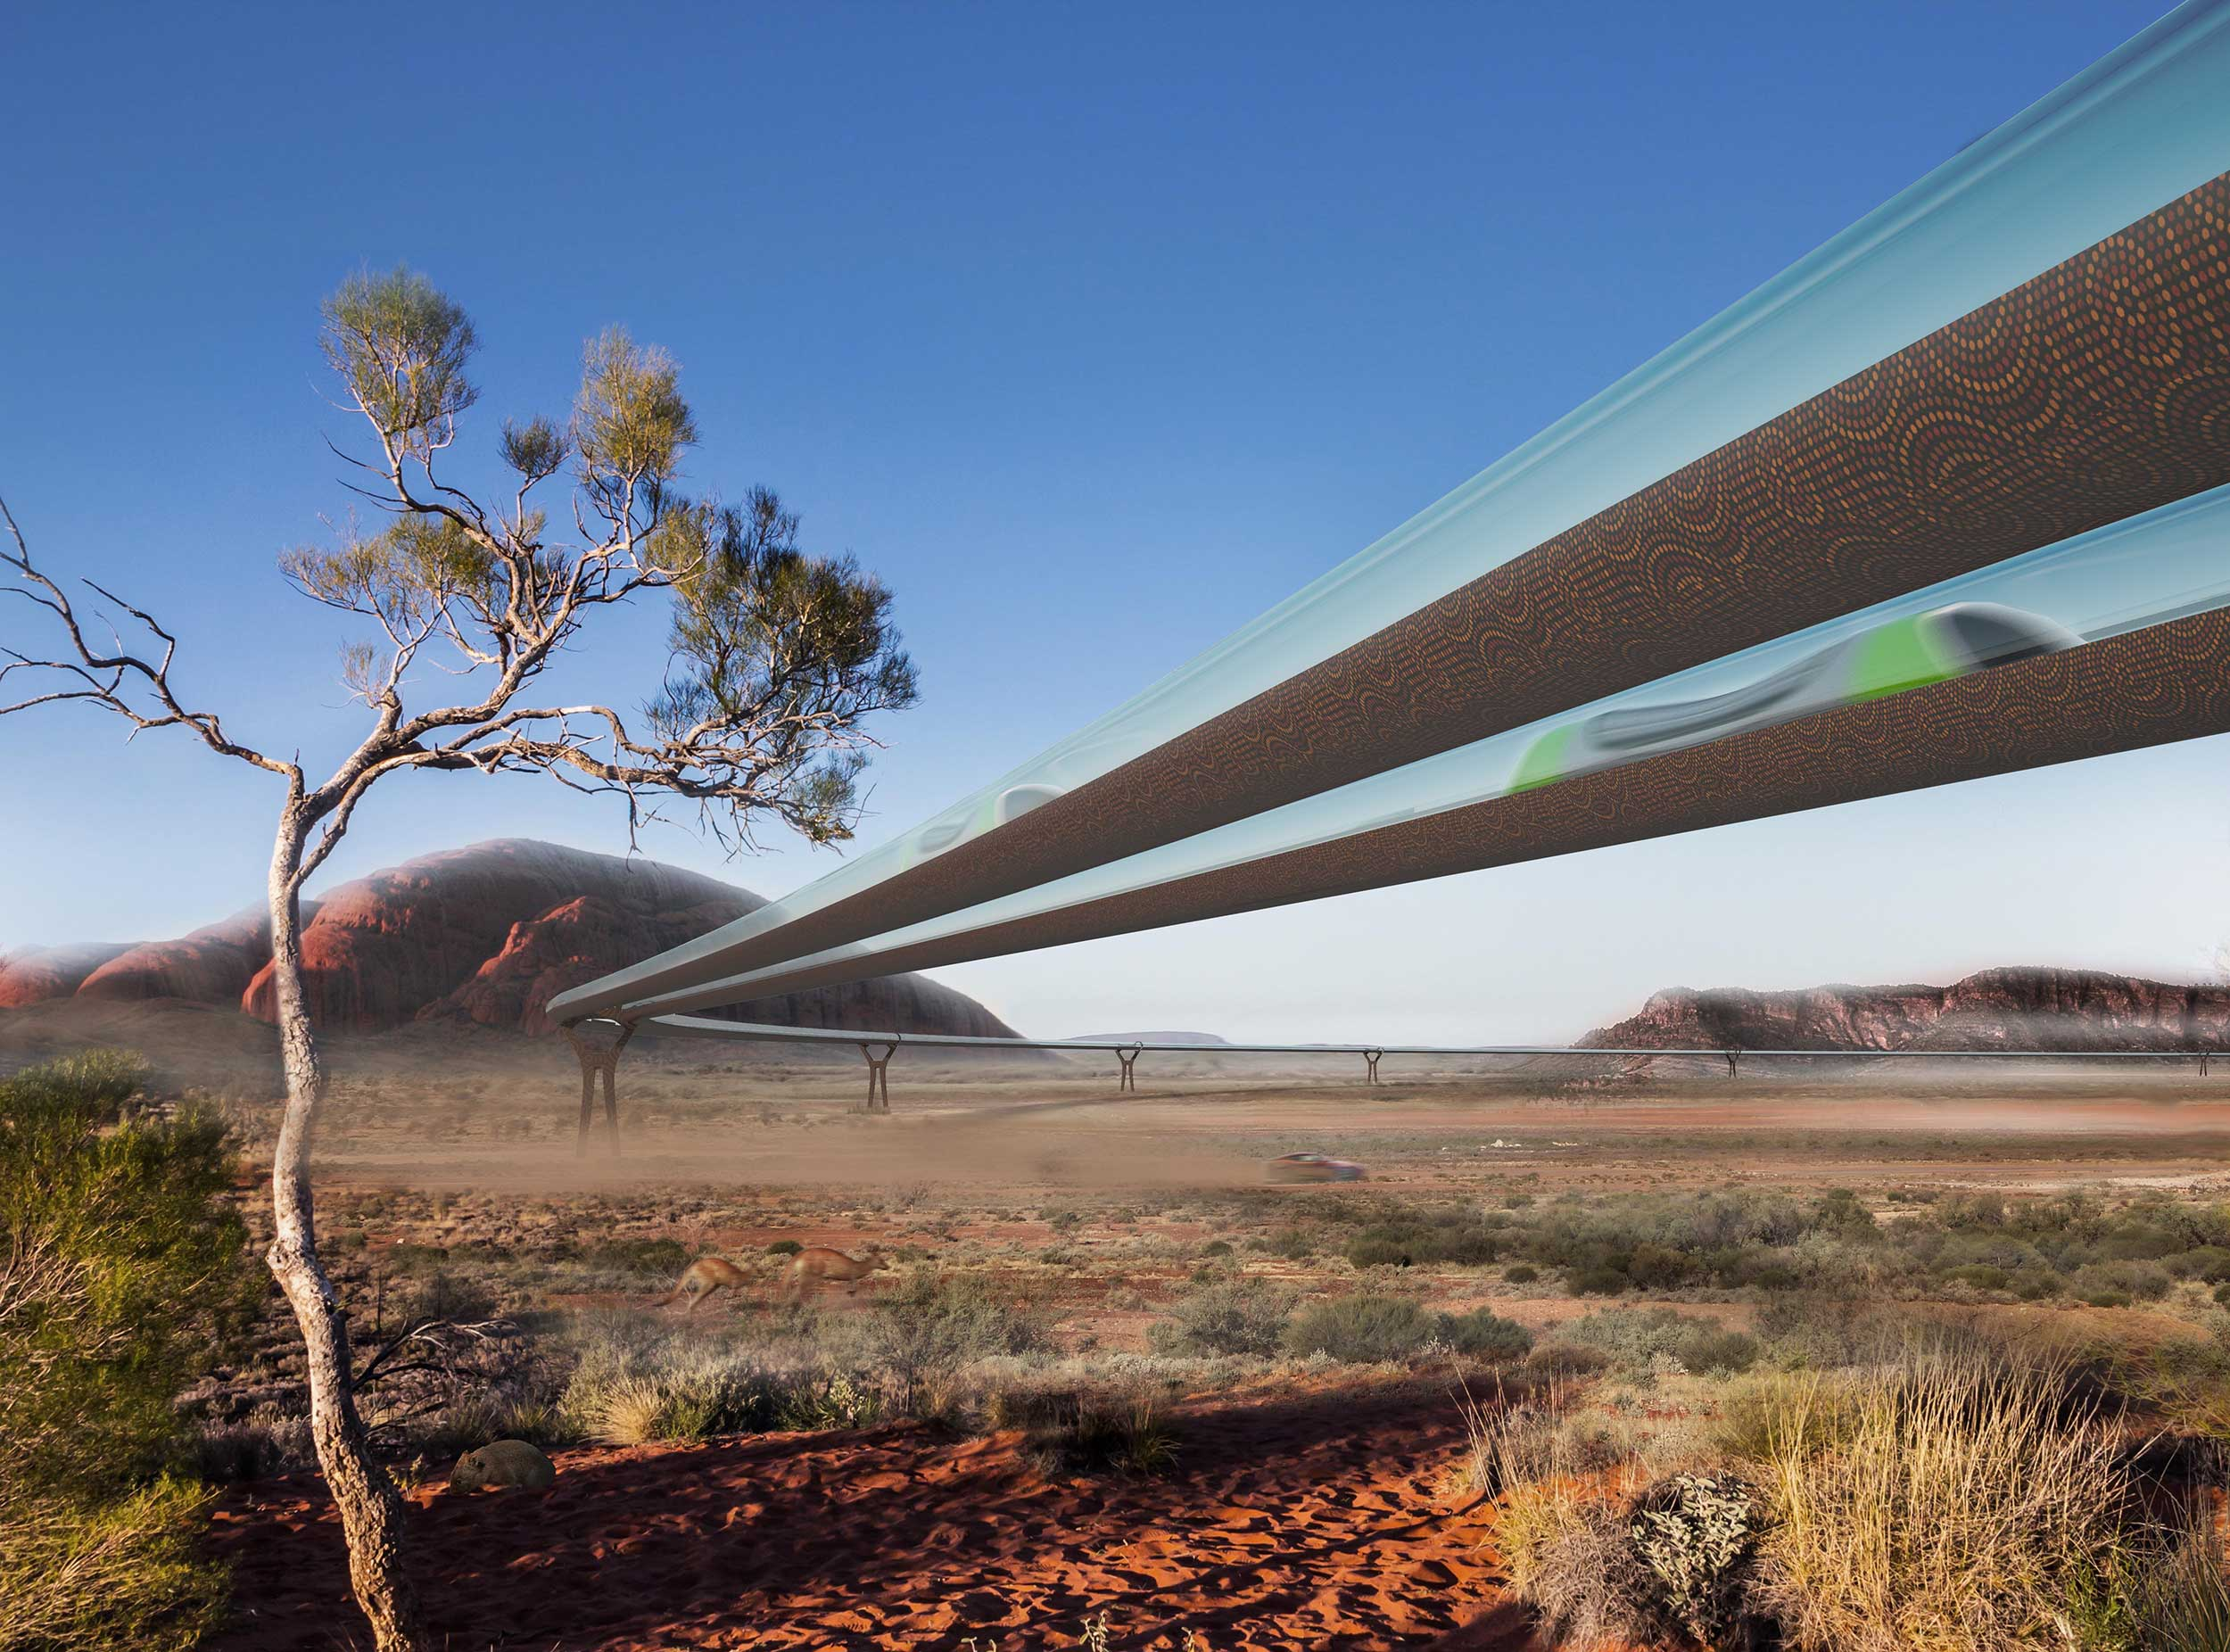 Perth, Adelaide, Melbourne, Sydney and Brisbane could be connected by the Hyperloop, a vacuum tube with a maglev train travelling at 1,000km per hour. The route between Melbourne and Sydney is one of the busiest in the world, with four to five planes per hour at morning and evening peak. The Hyperloop would be a sustainable alternative.